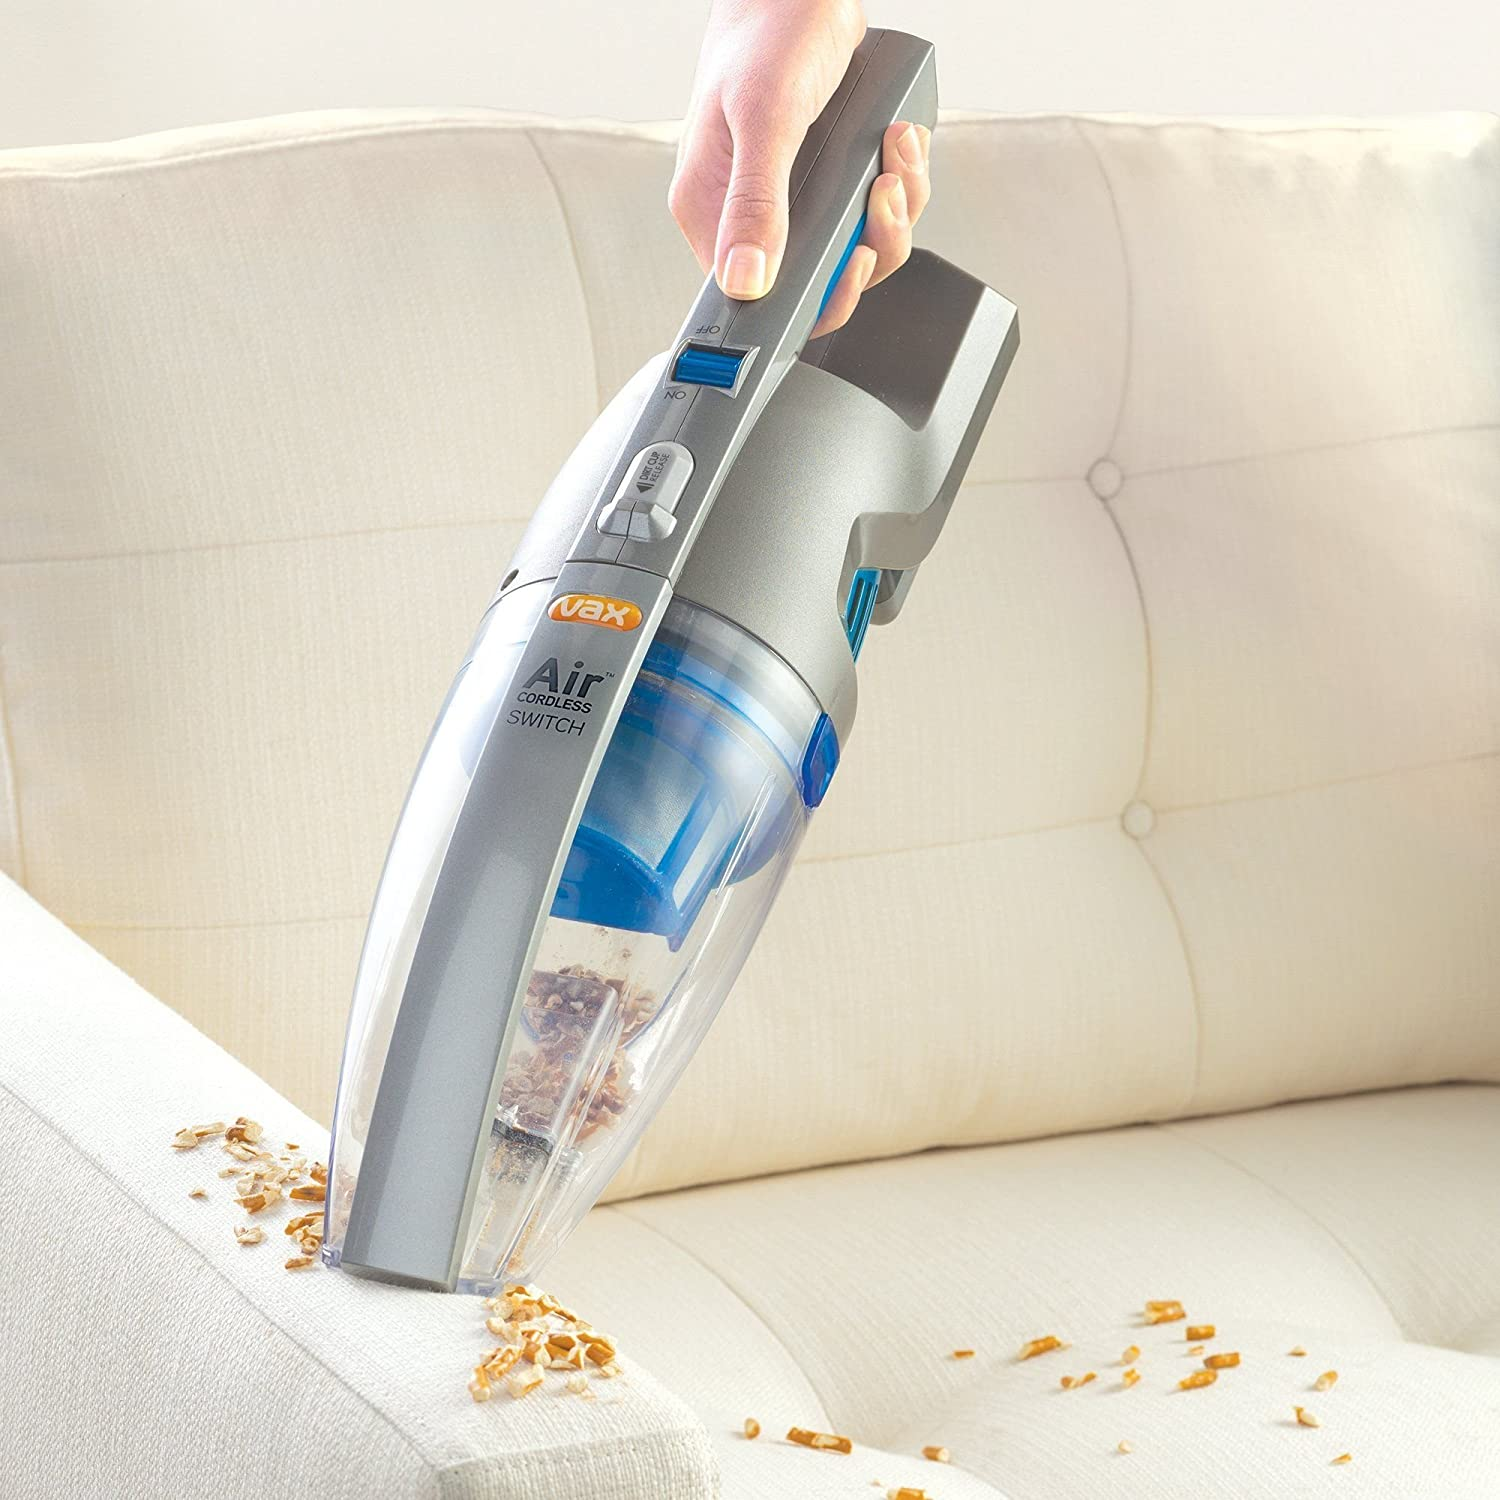 What is the best handheld vacuum cleaner reference com - Vax H85 Ach Bd Air Cordless Lithium Life Handheld Vacuum Cleaner 0 7 L Silver Blue Amazon Co Uk Kitchen Home